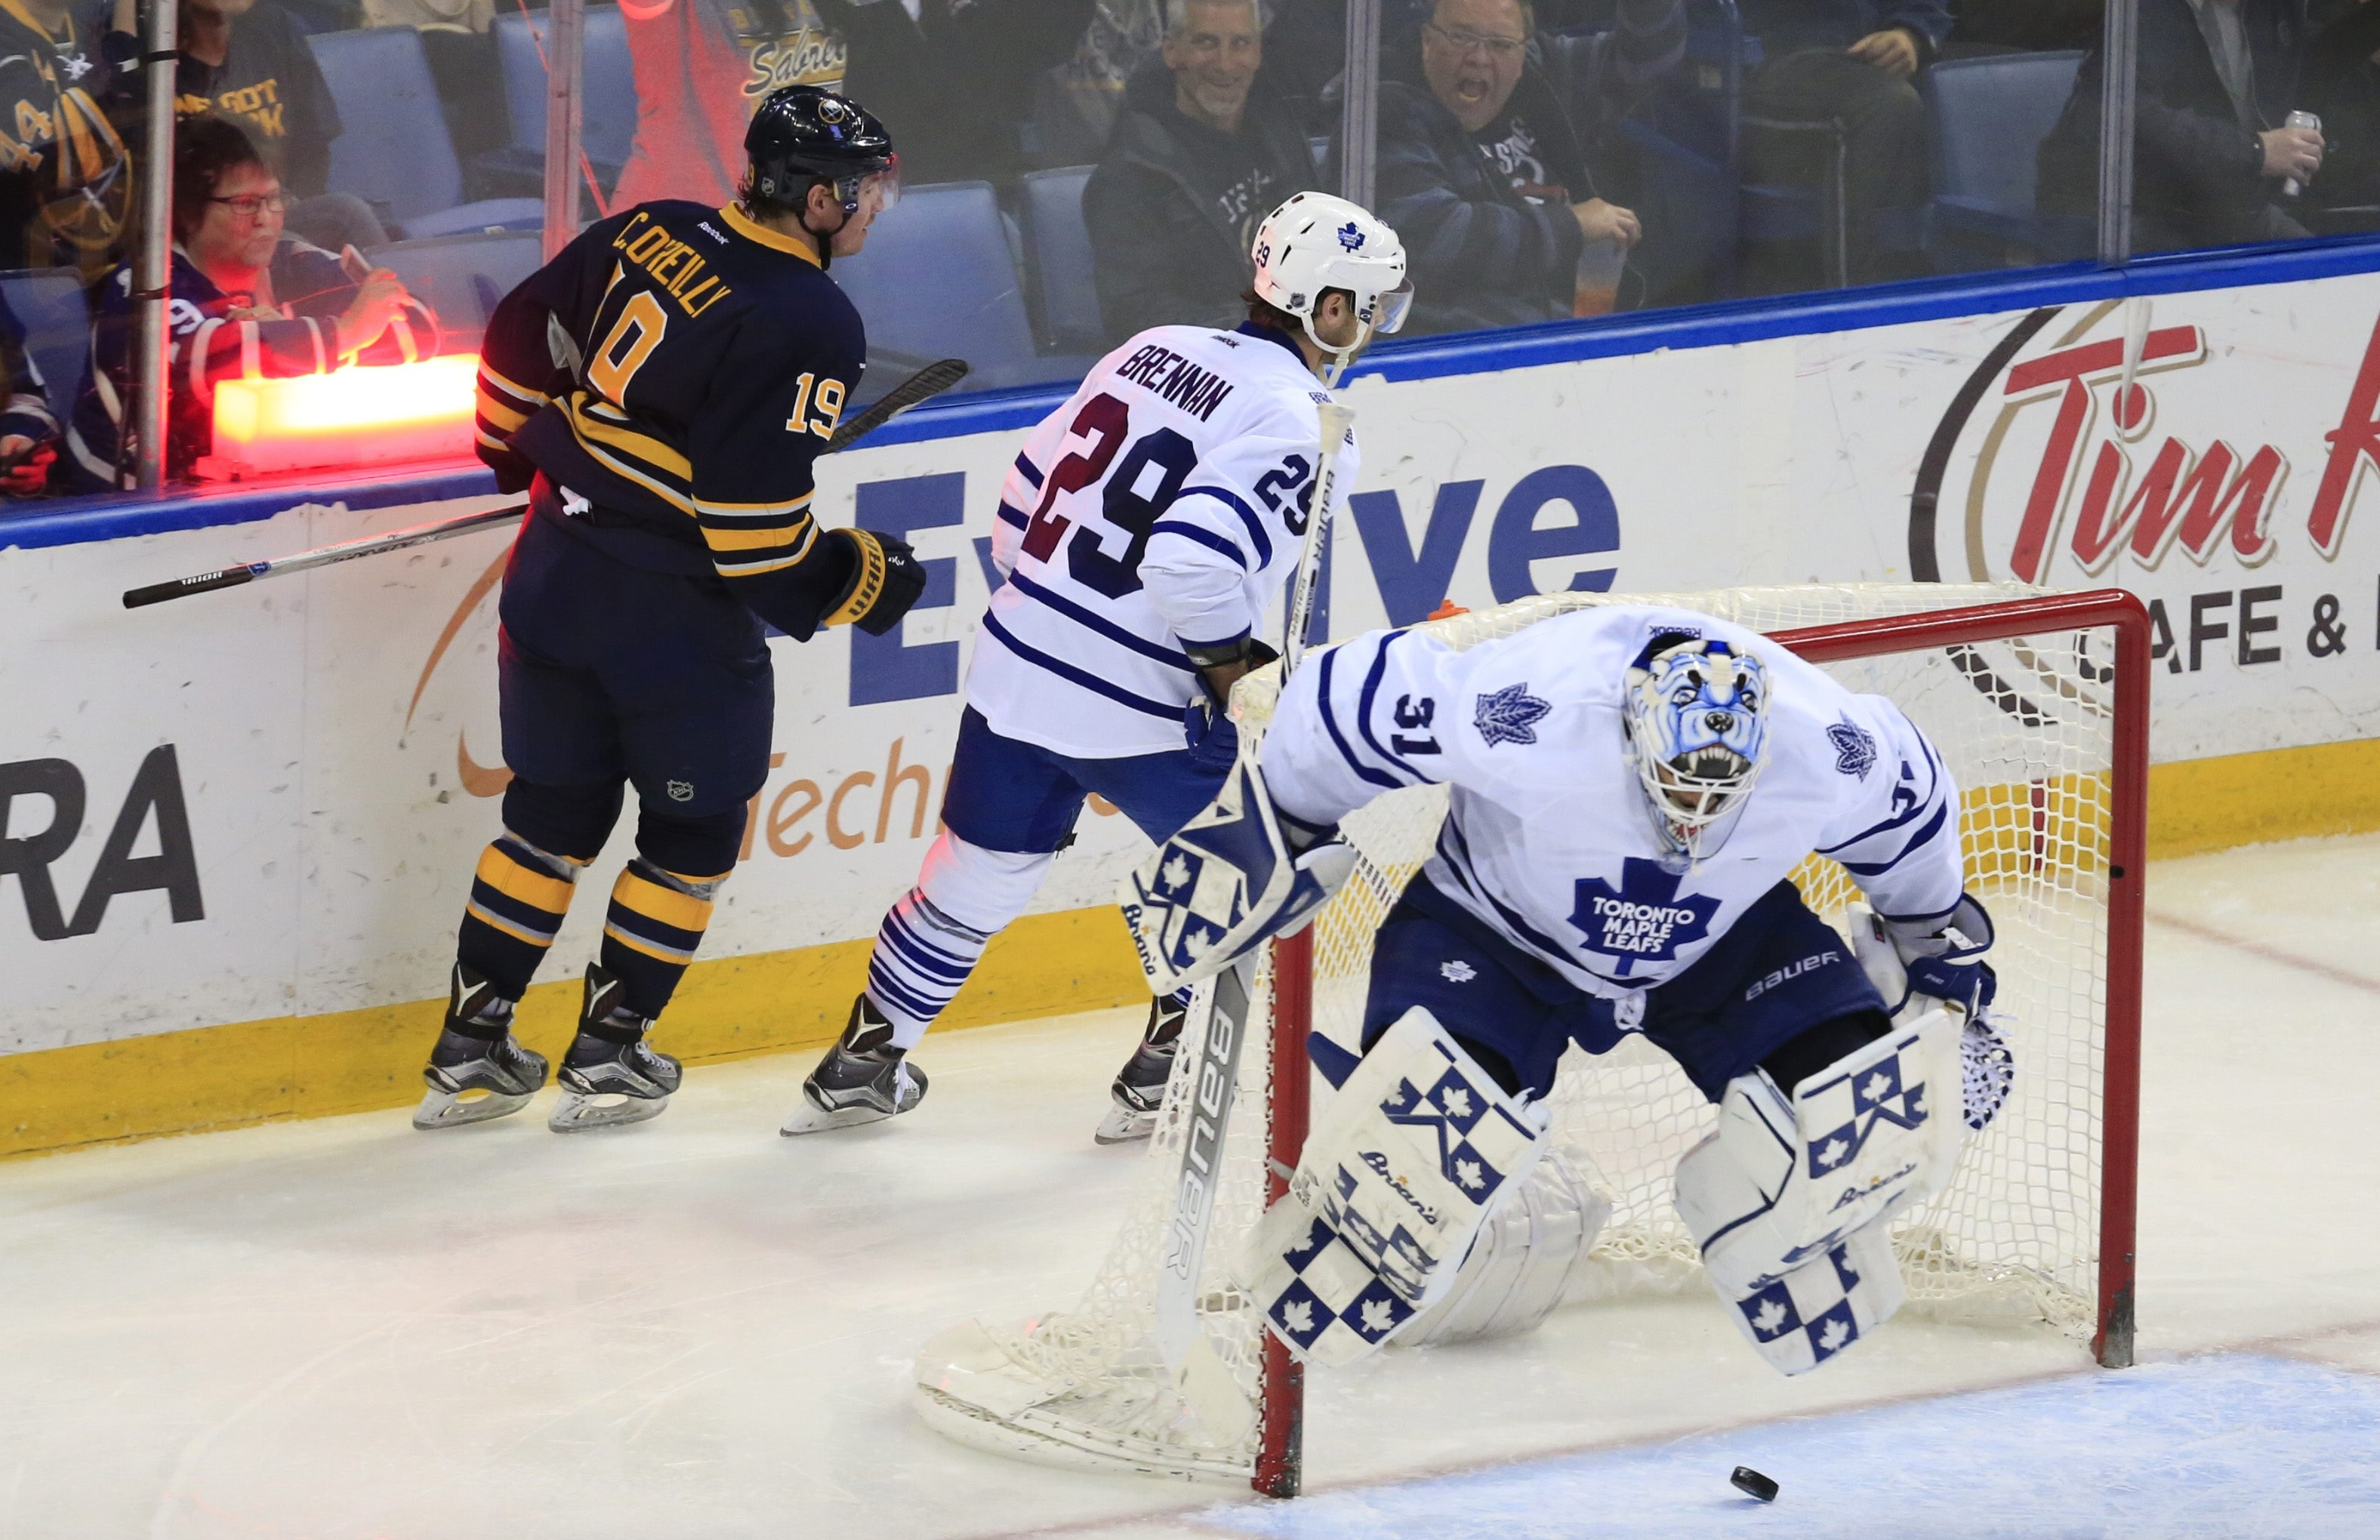 Buffalo's Cal O'Reilly scores his second goal of the game on Toronto Maple Leafs goaltender Garret Sparks in the second period.